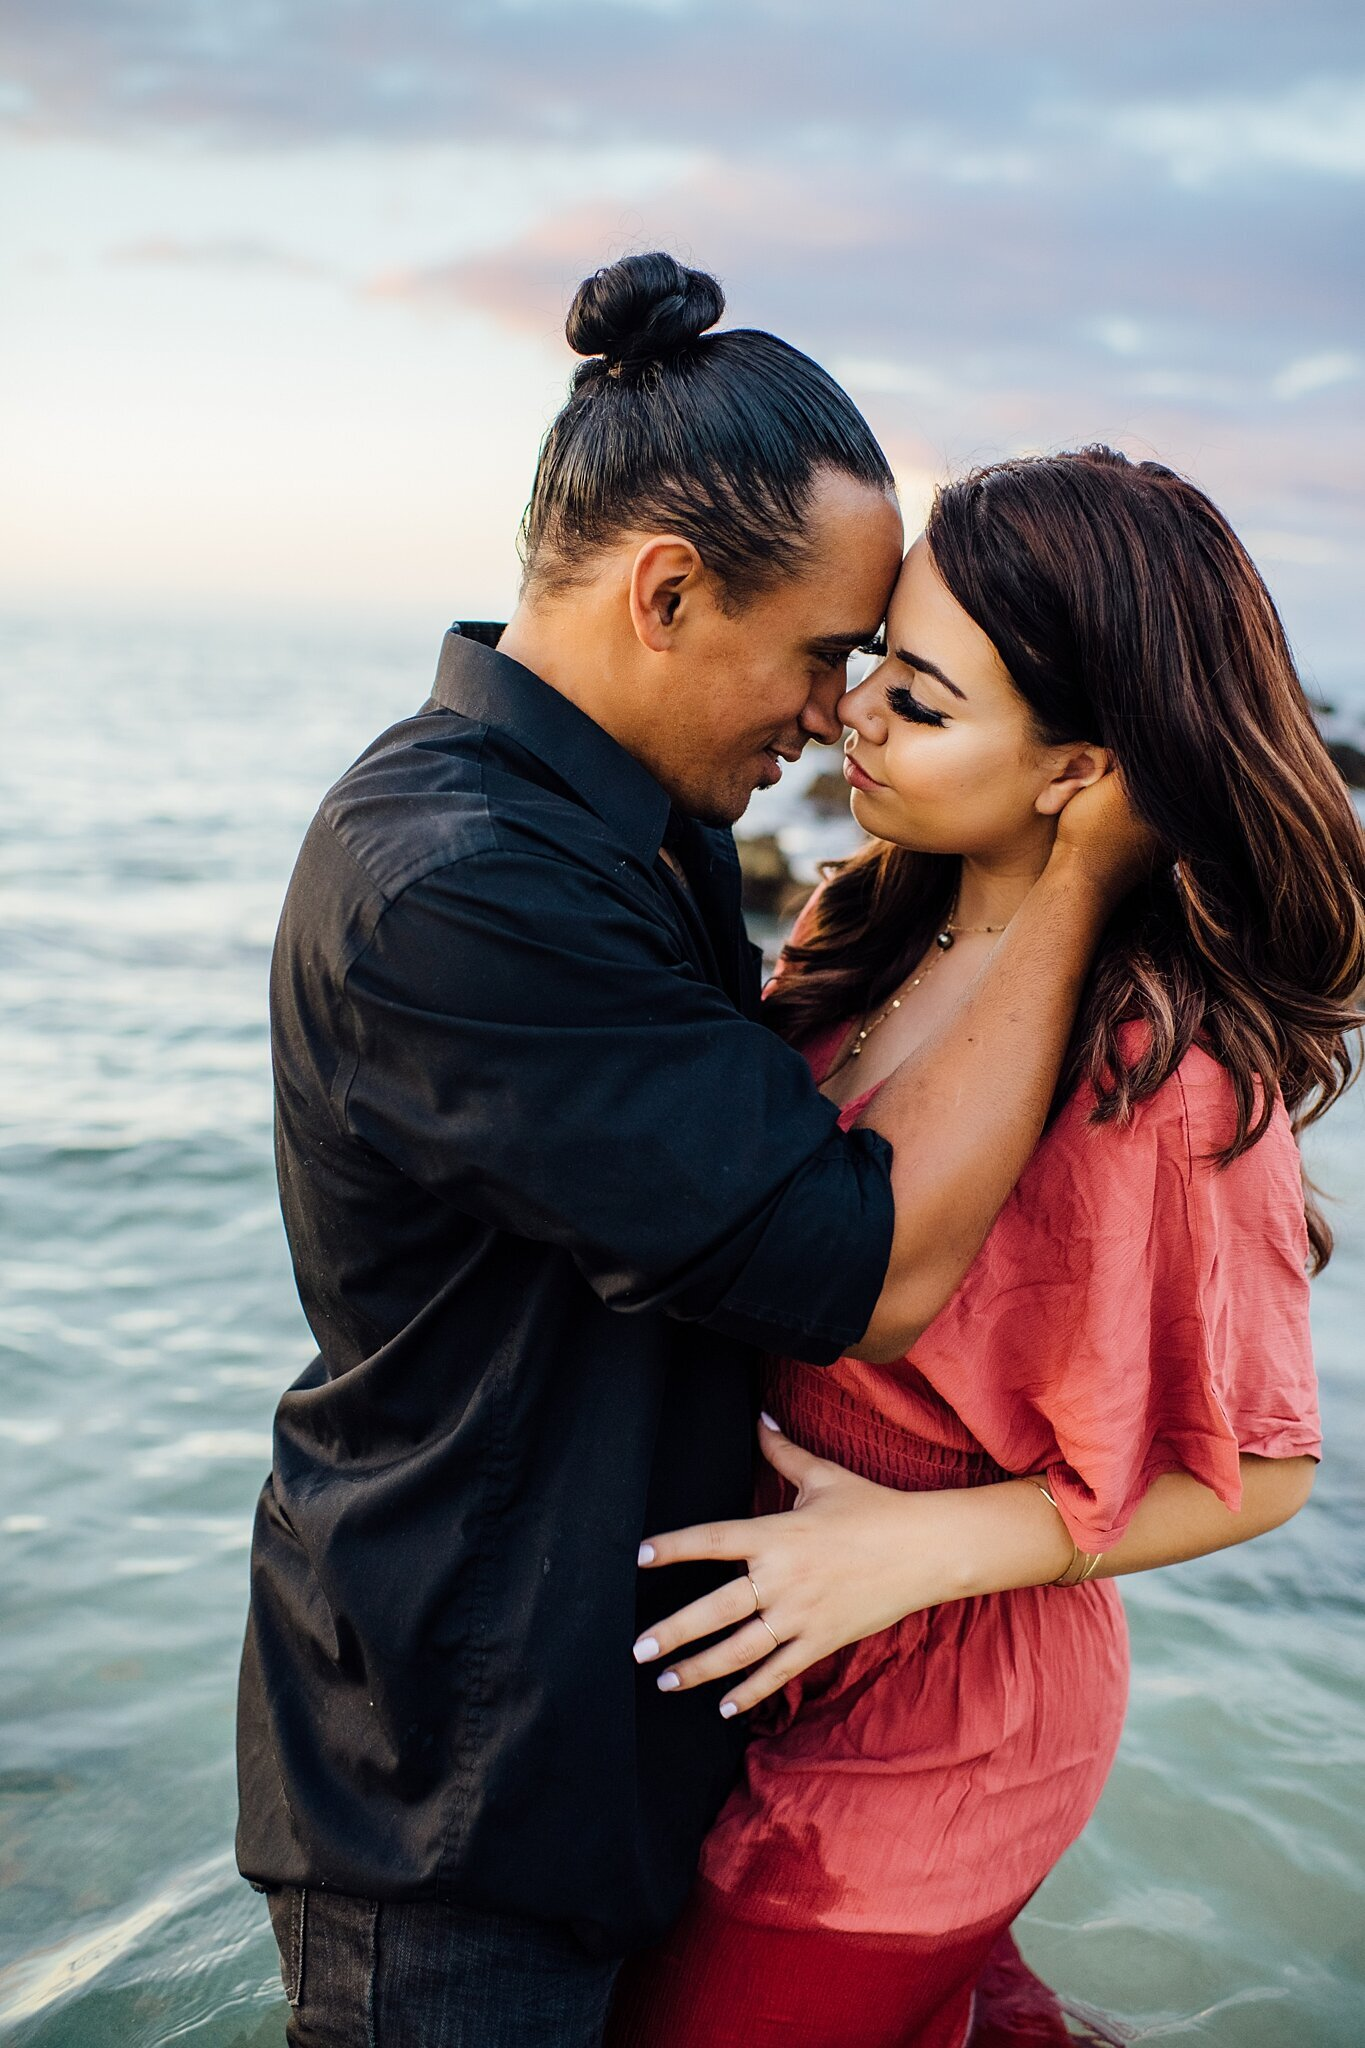 kona-hawaii-engagement-photographer-12